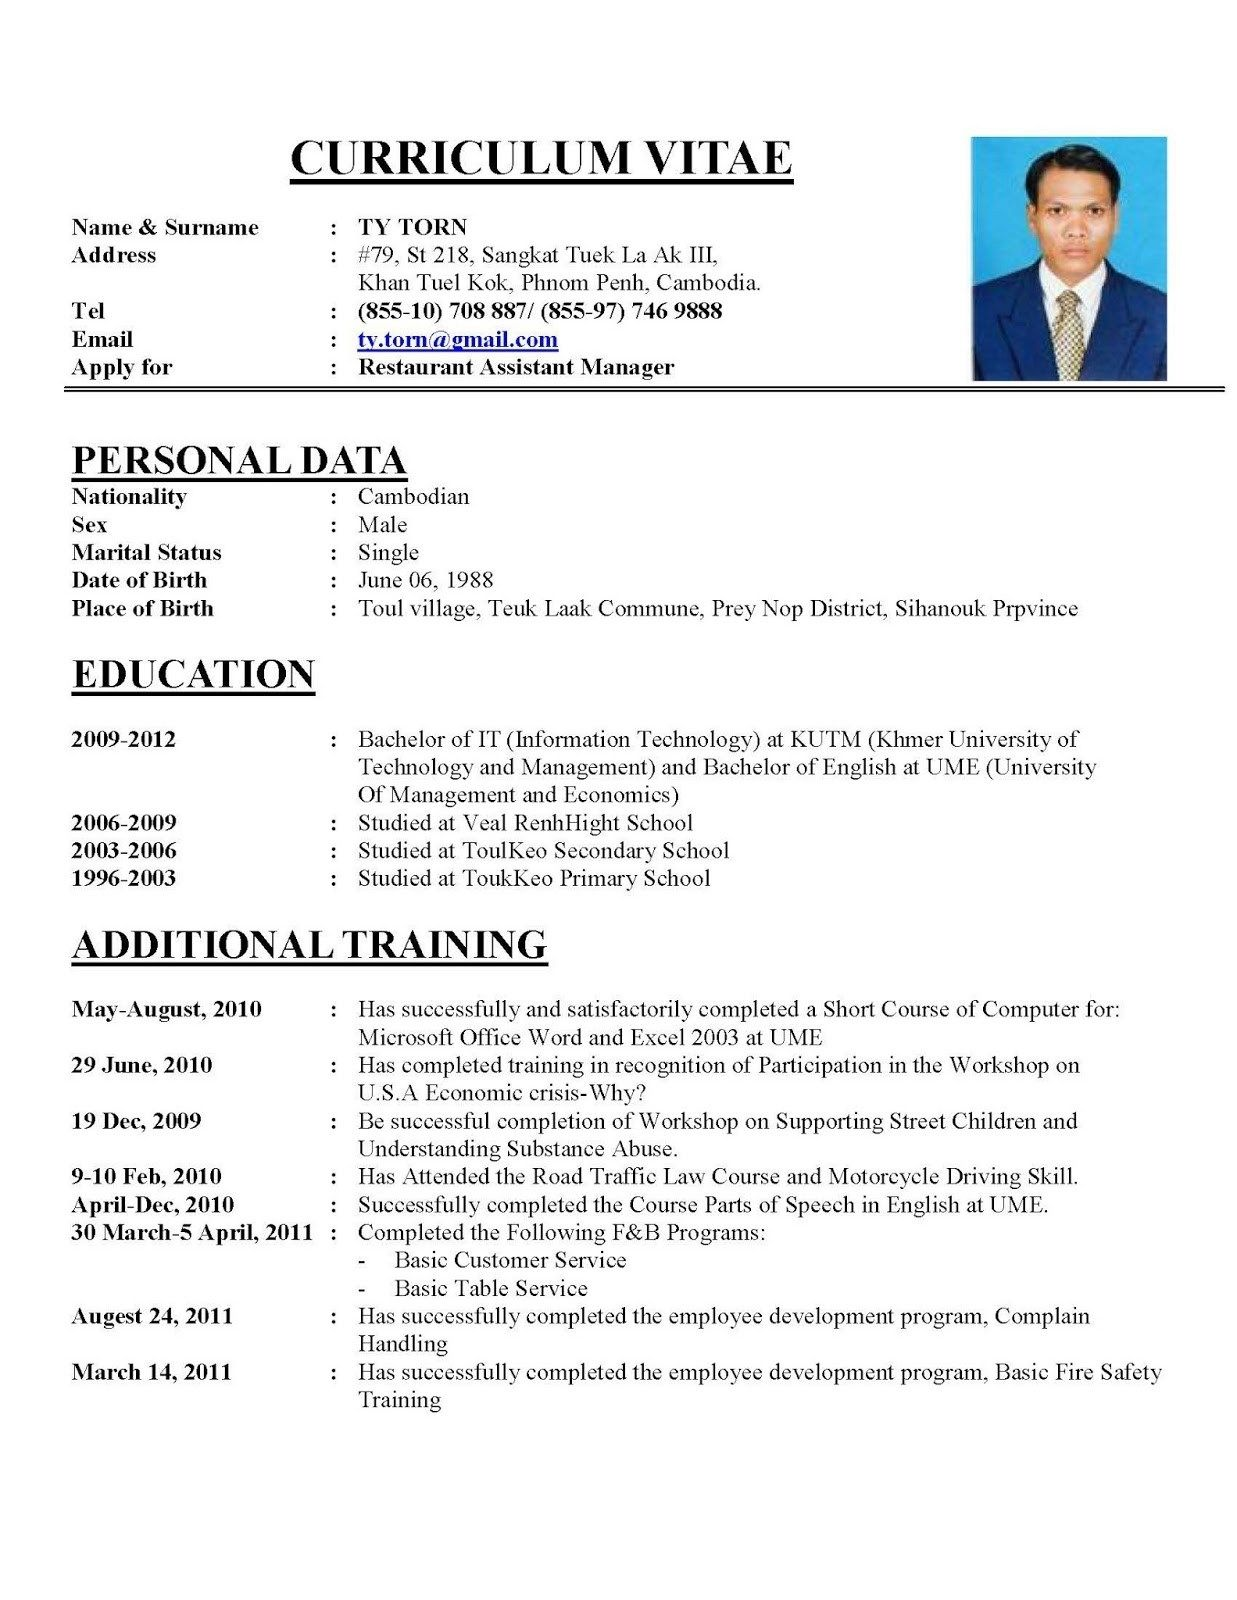 resume templates create free creating cv professional resumes online for curriculum archaicawful